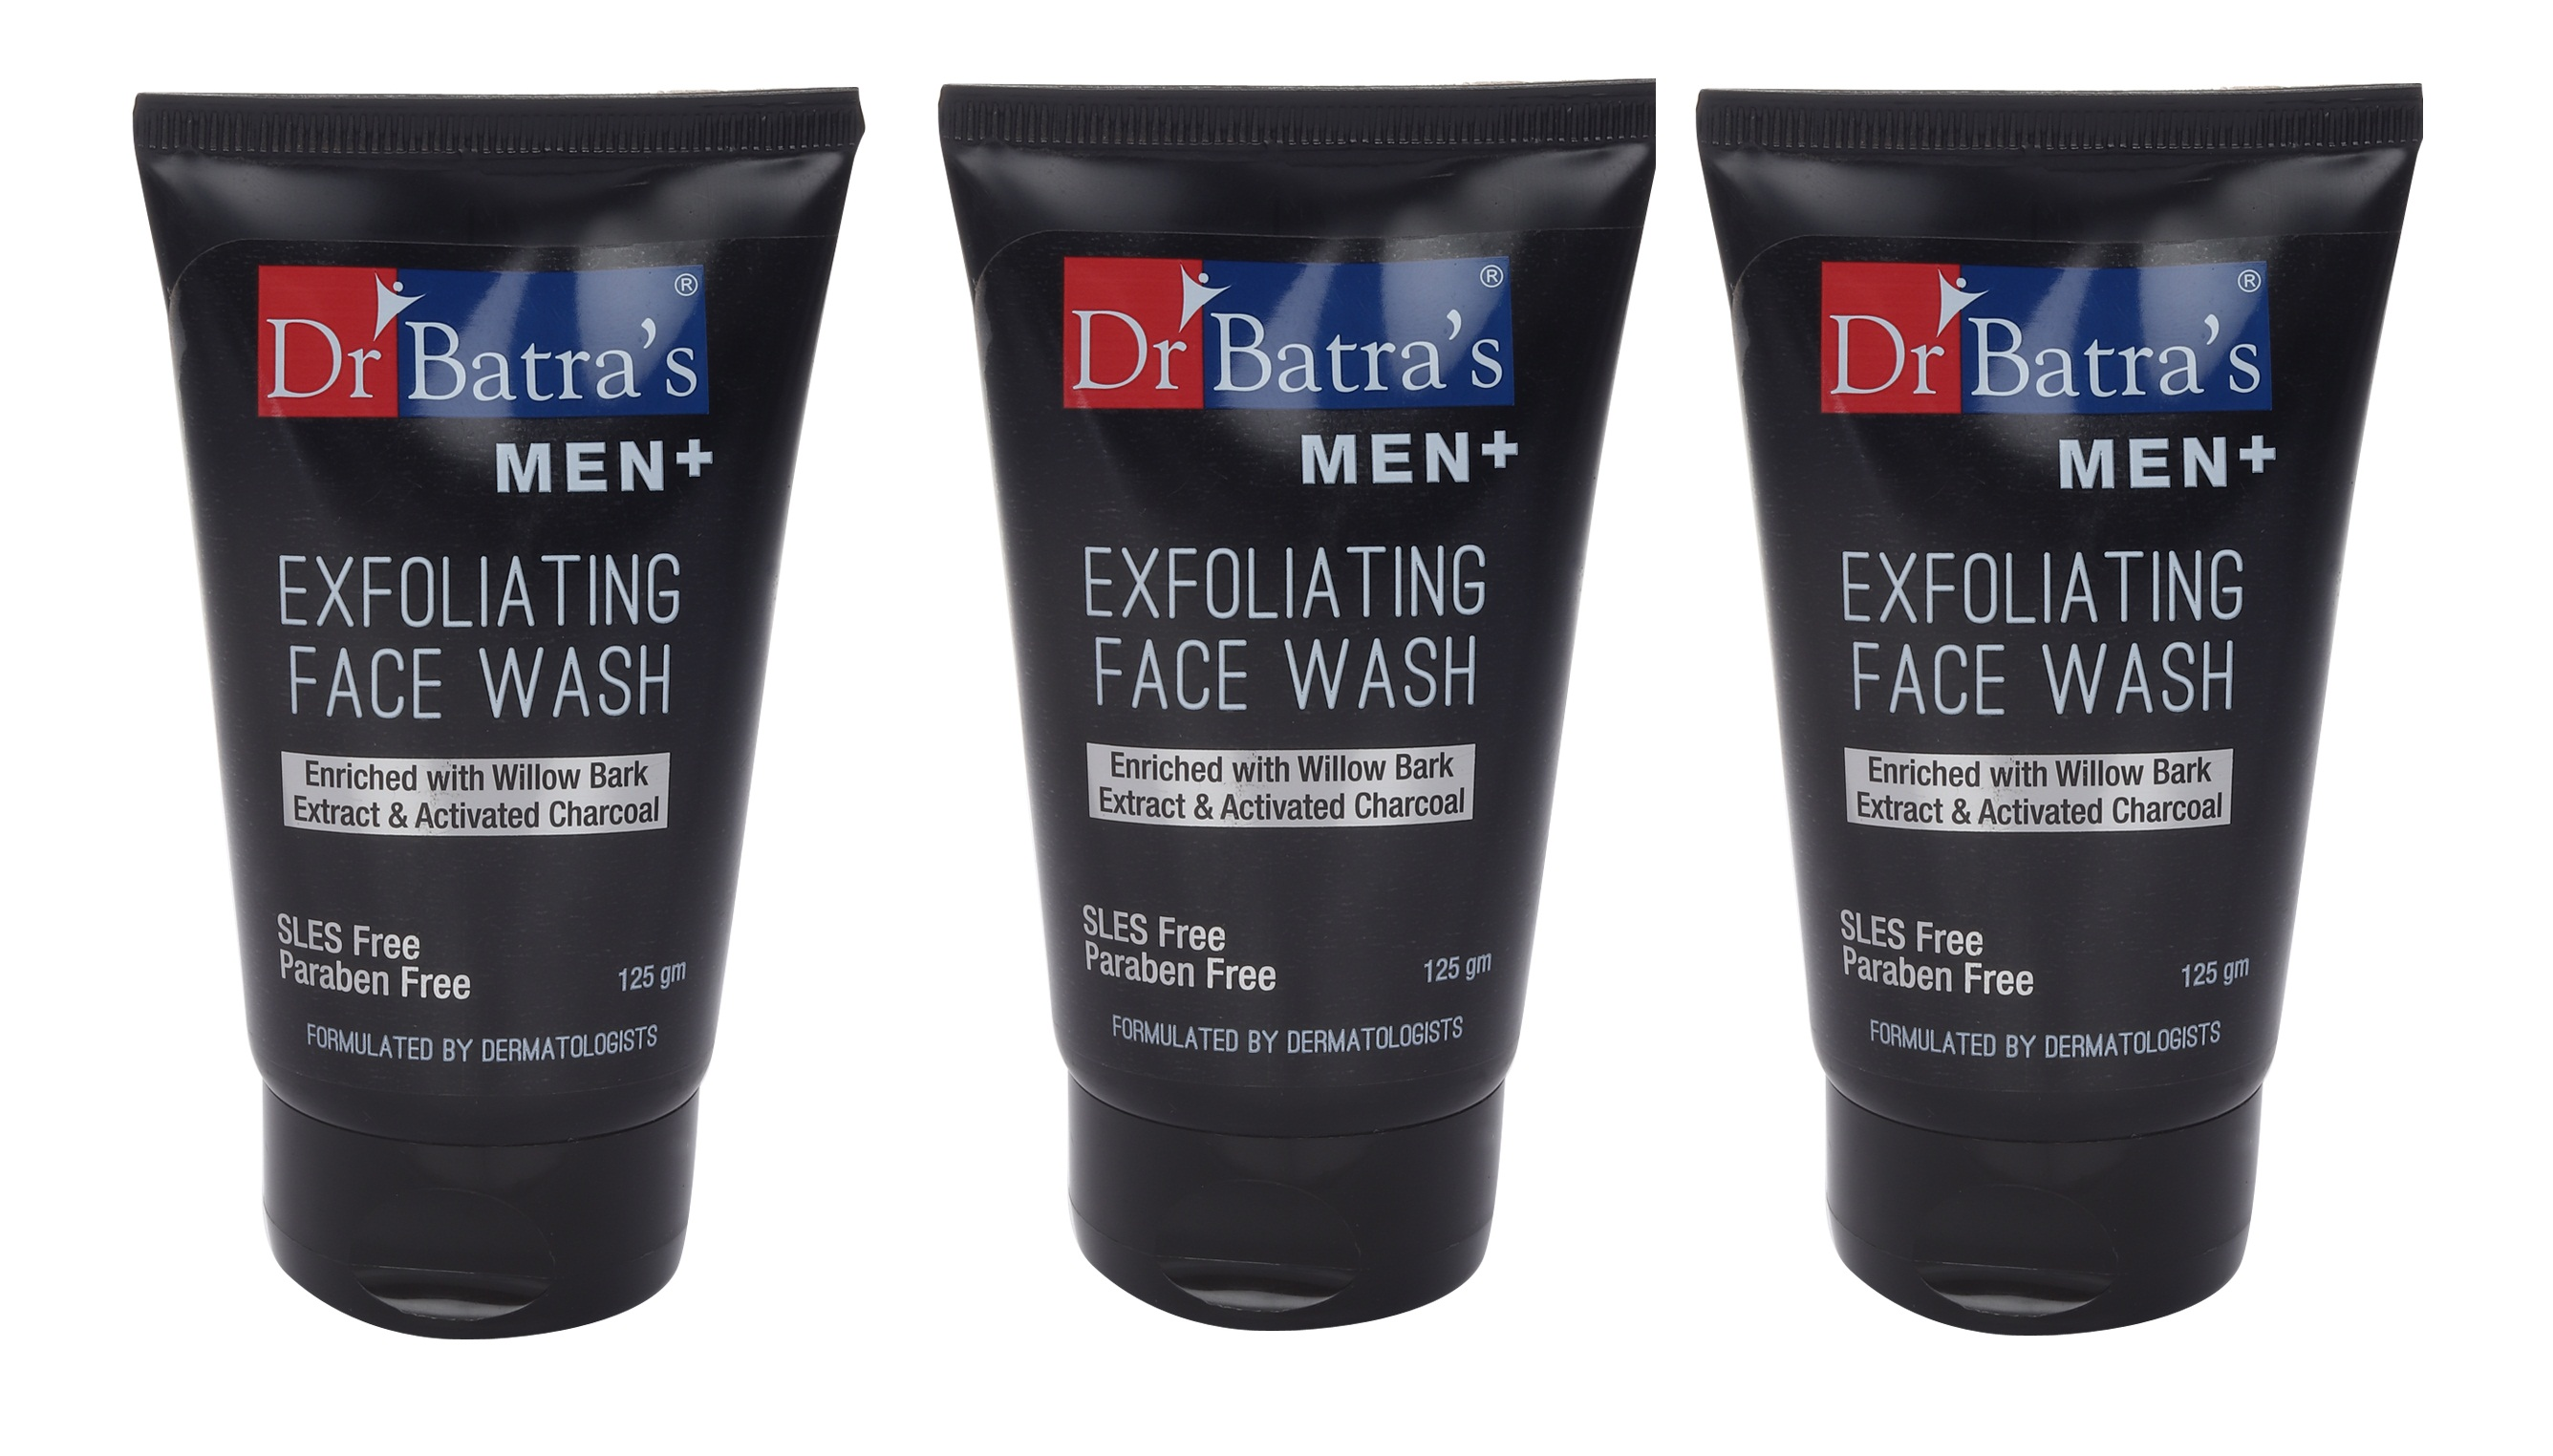 Dr Batra's | Dr Batra's Men+ Exfoliating Face Wash Enriched With Willow Black Extract & Activated Charcoal - 125 ml (Pack of 3)